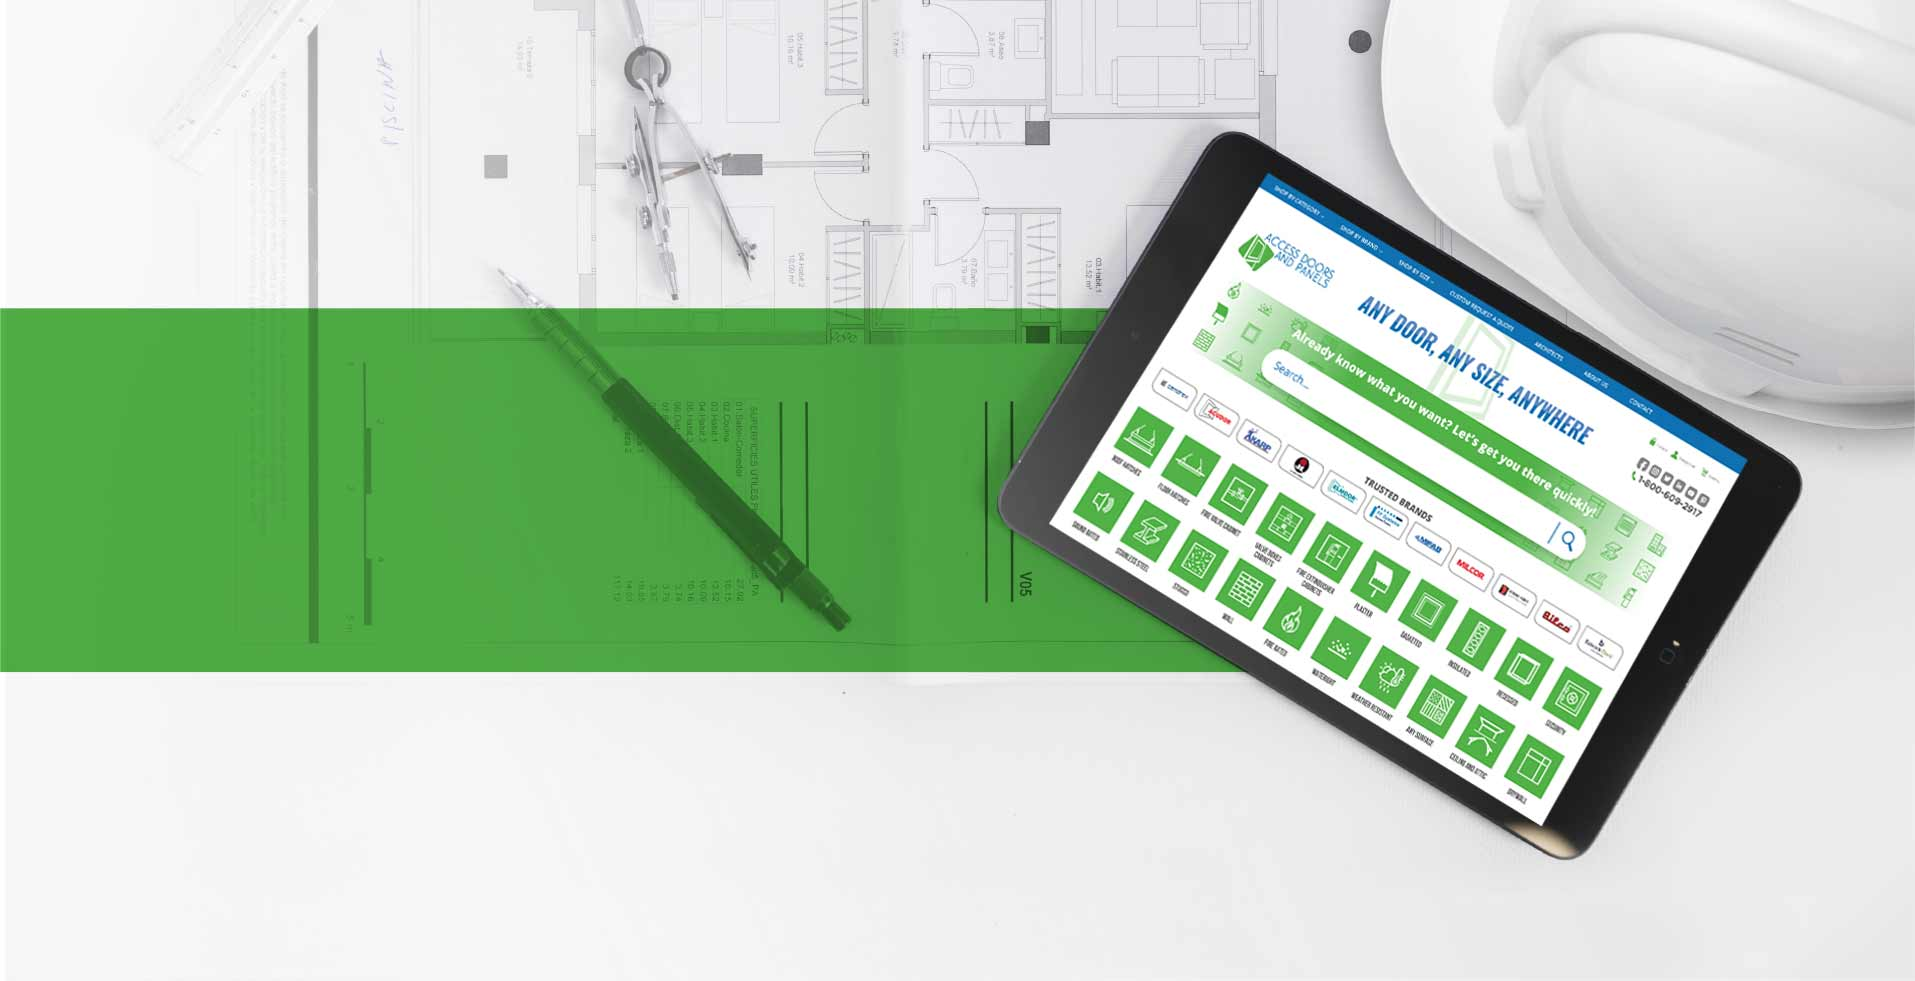 Contractor plan in backgrounds, a tablet, and a text that when you work with access doors and panels you're in good hands.